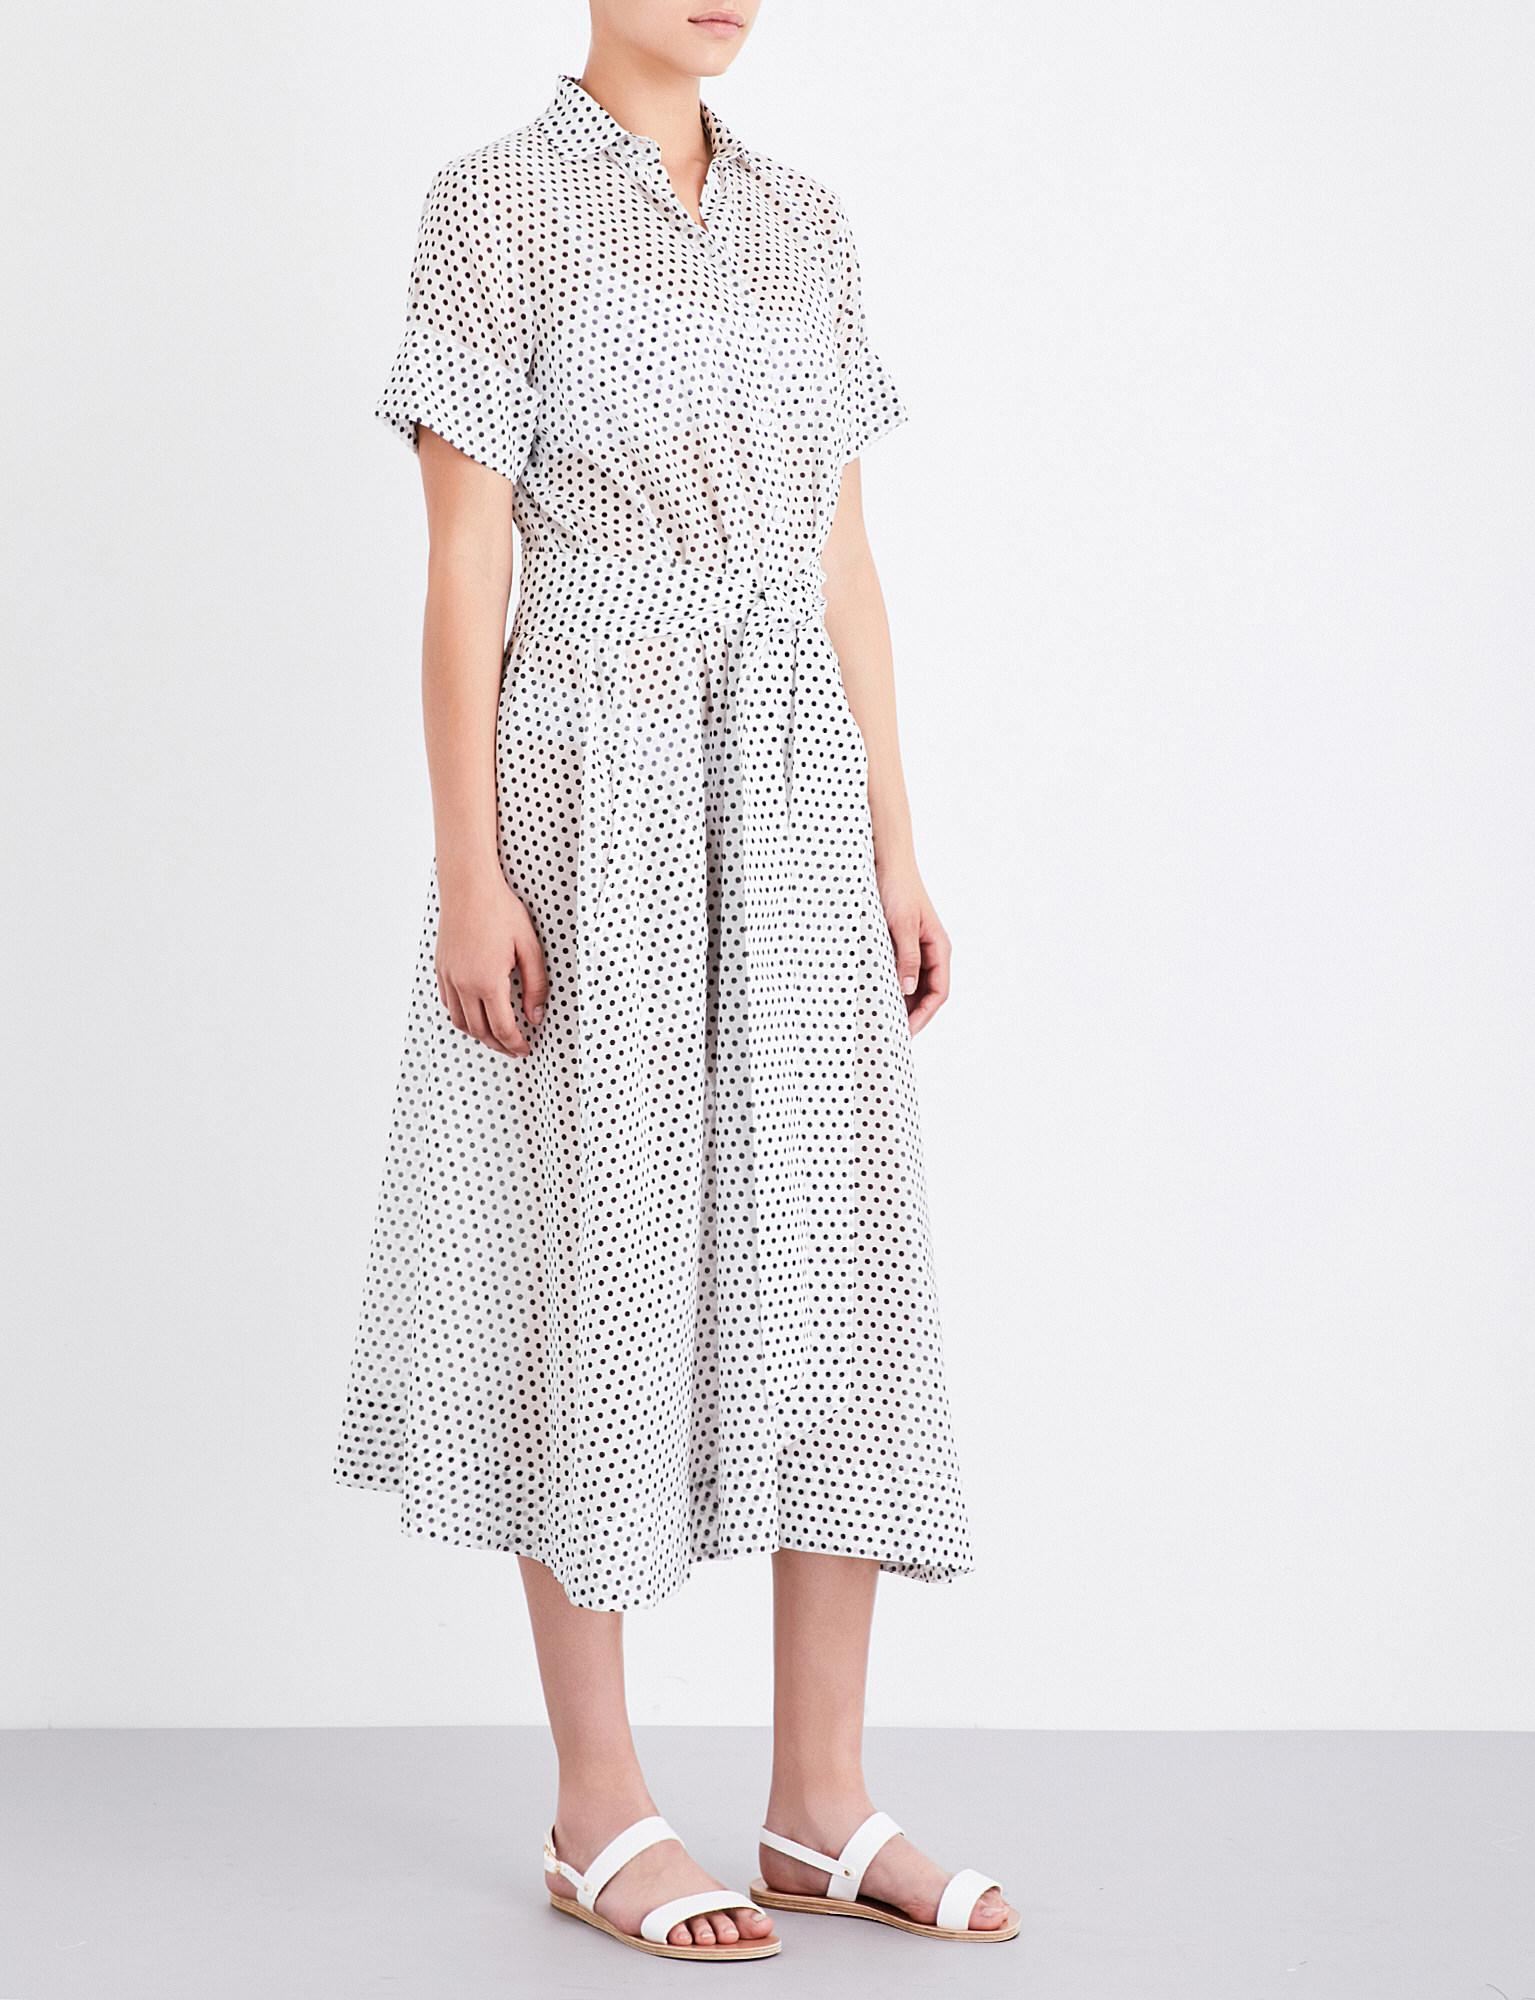 adbb48f952d Gallery. Previously sold at  Selfridges · Women s Polka Dot Dresses